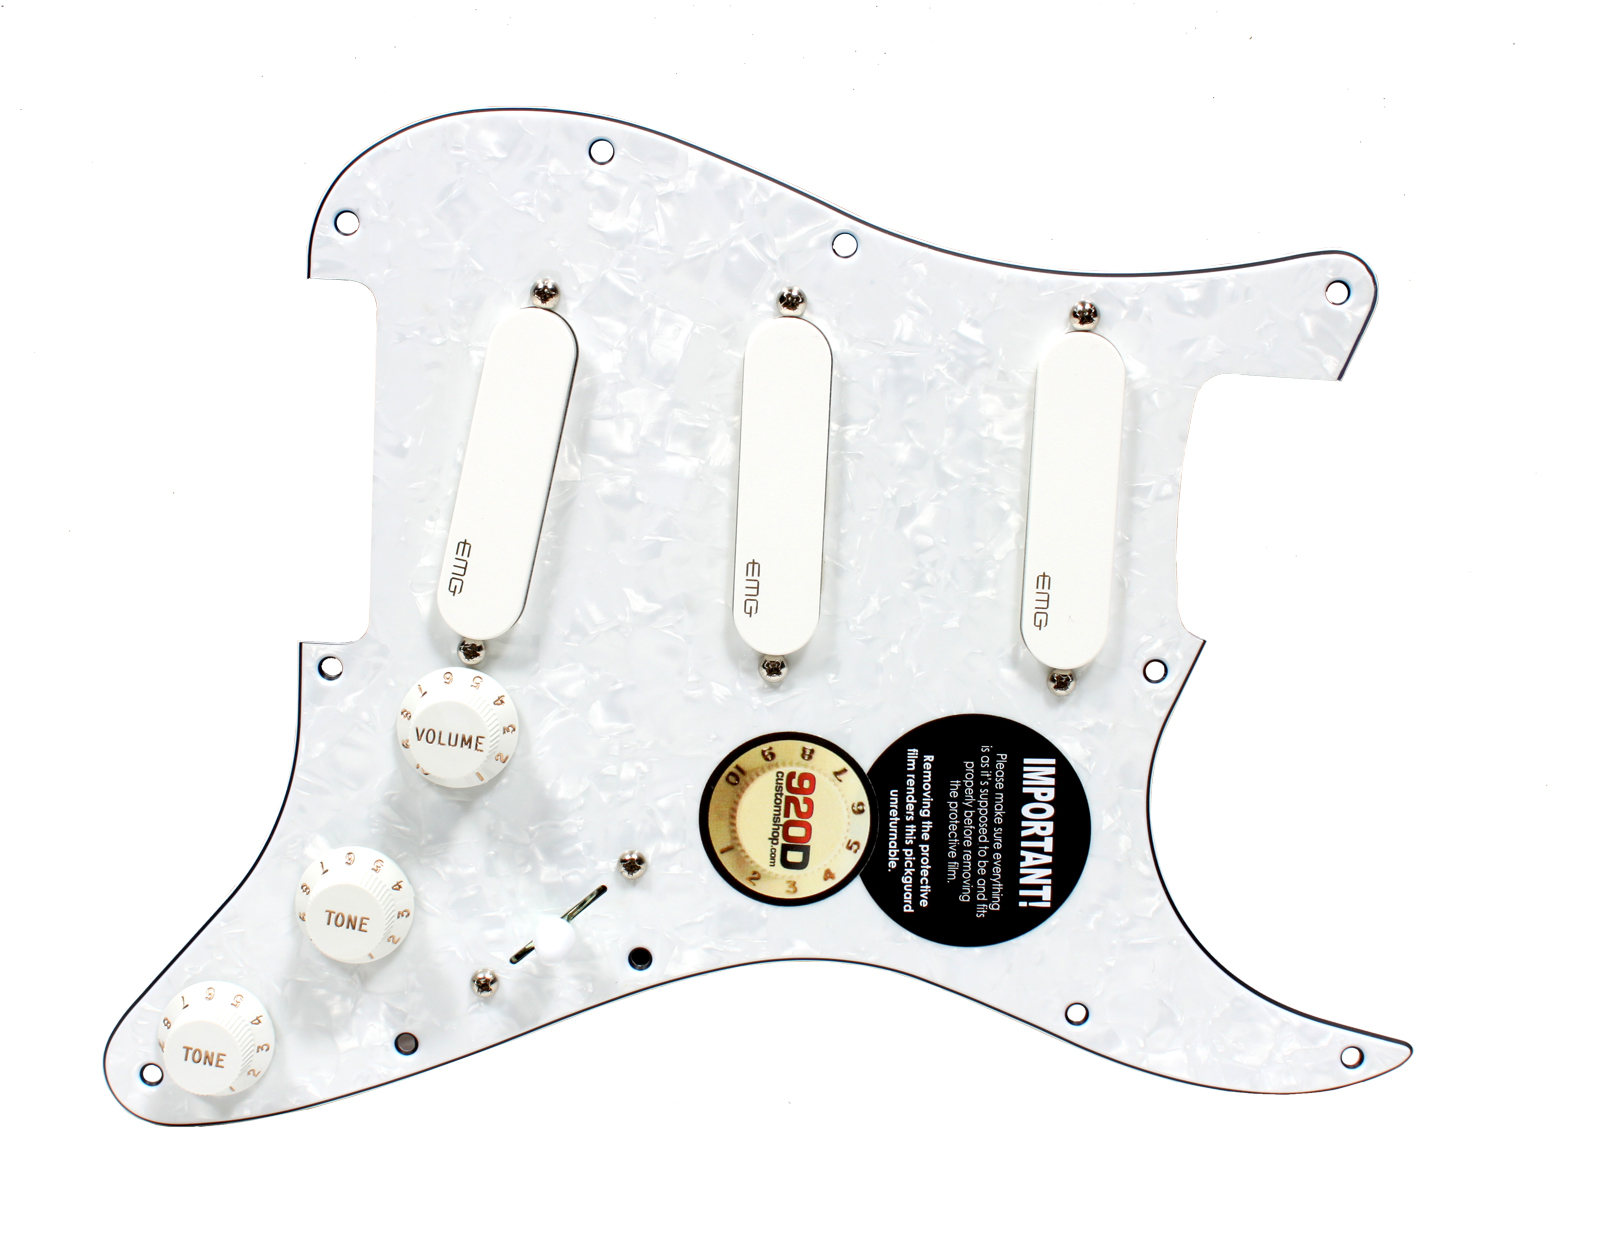 920d Custom Loaded Strat Pickguard W Emg Sa Spc Exg White